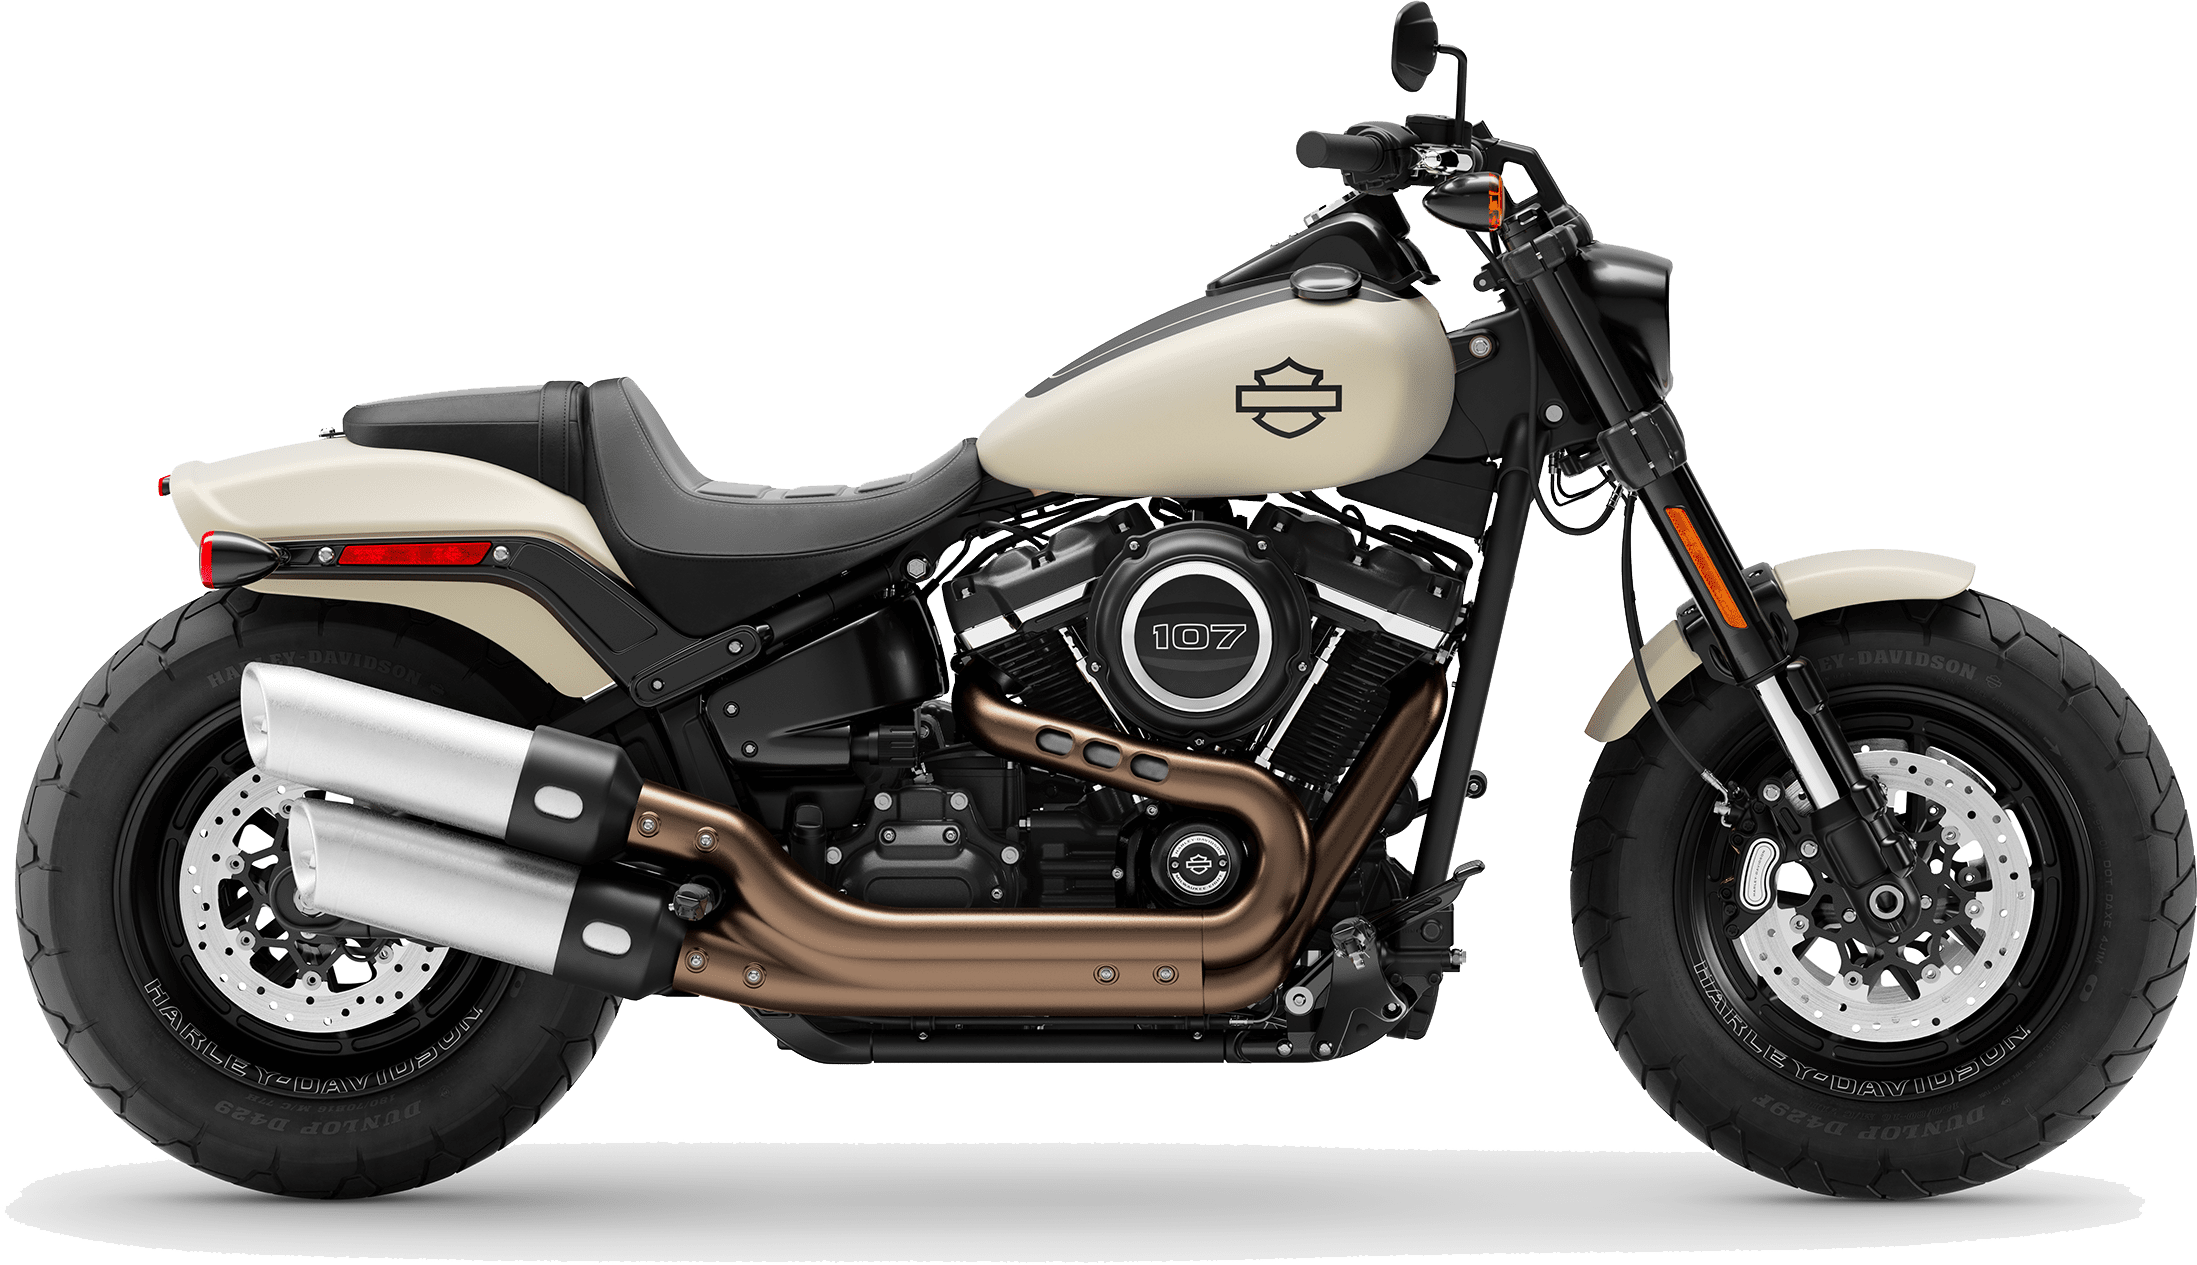 2019 Harley-Davidson Softail Fat Bob Bonneville Salt Denim